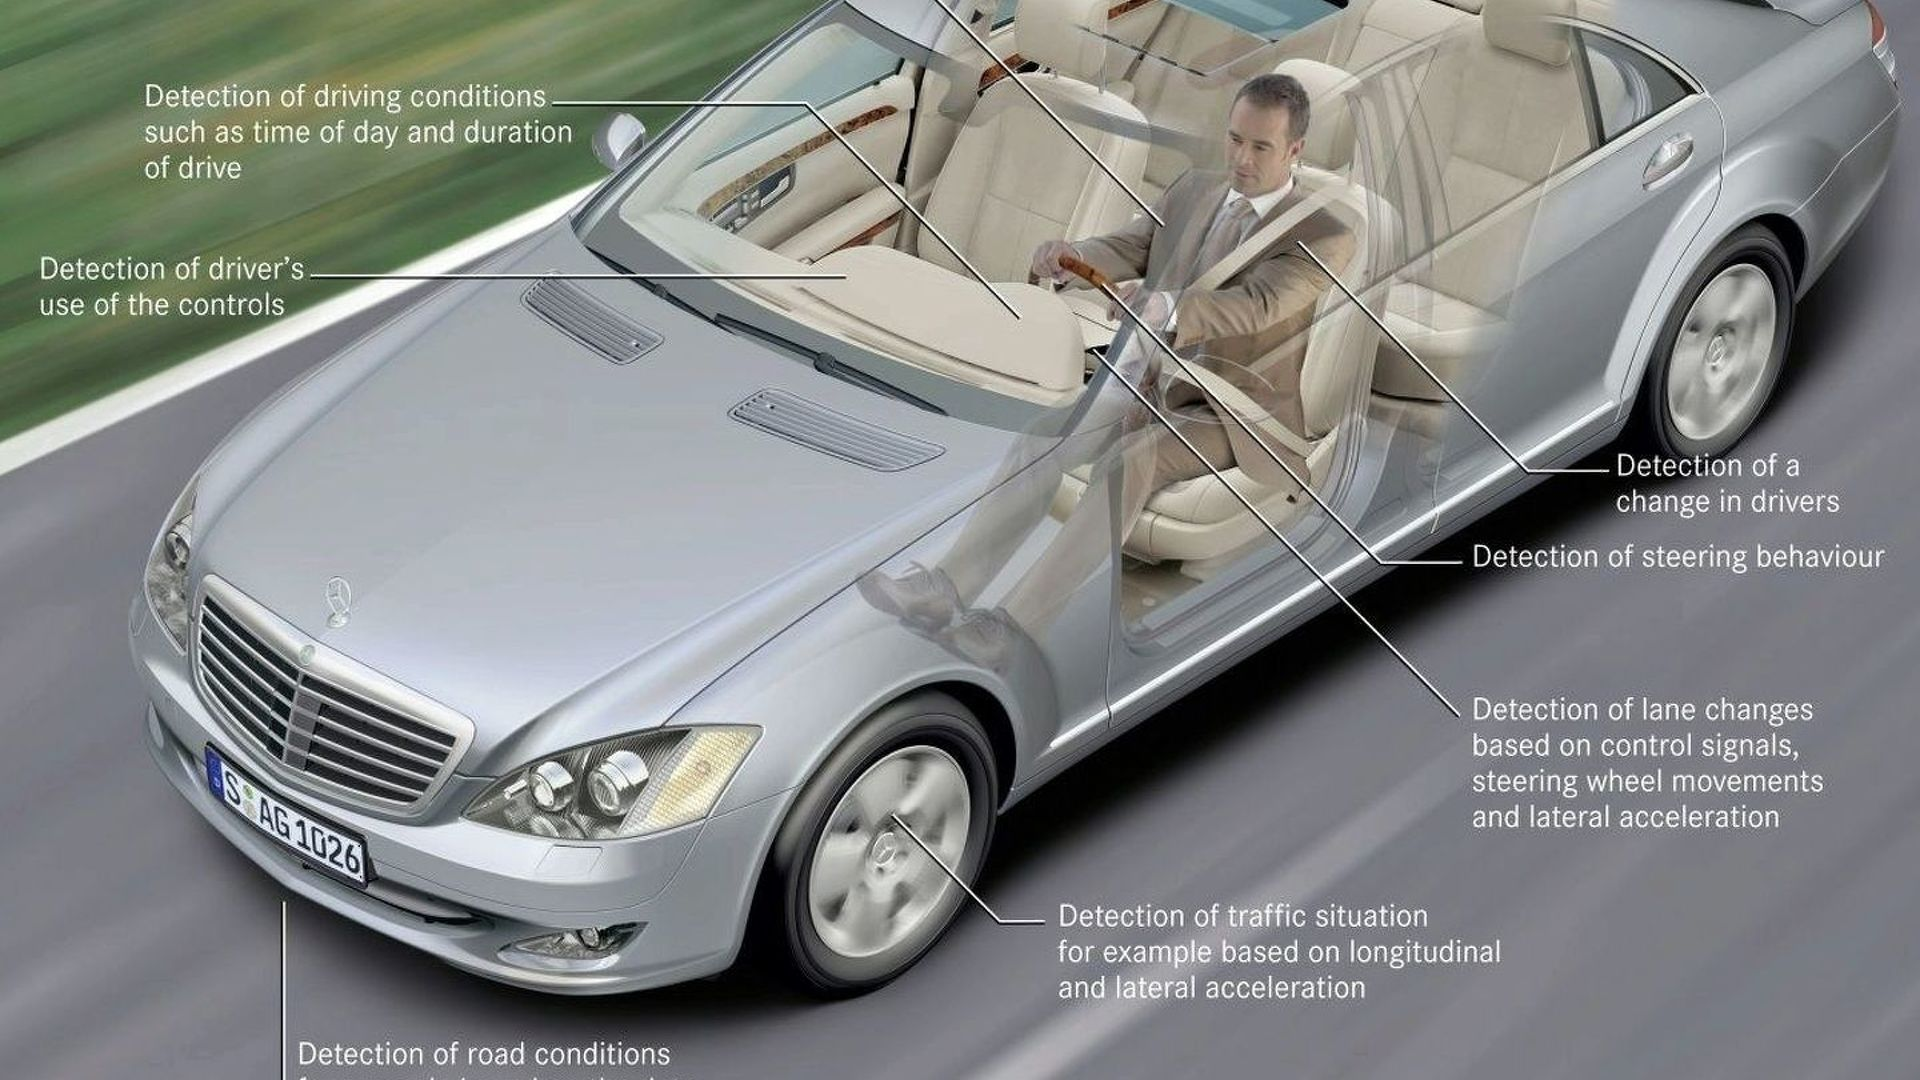 Next-Gen Mercedes E Class to Feature Driver Attention Support System